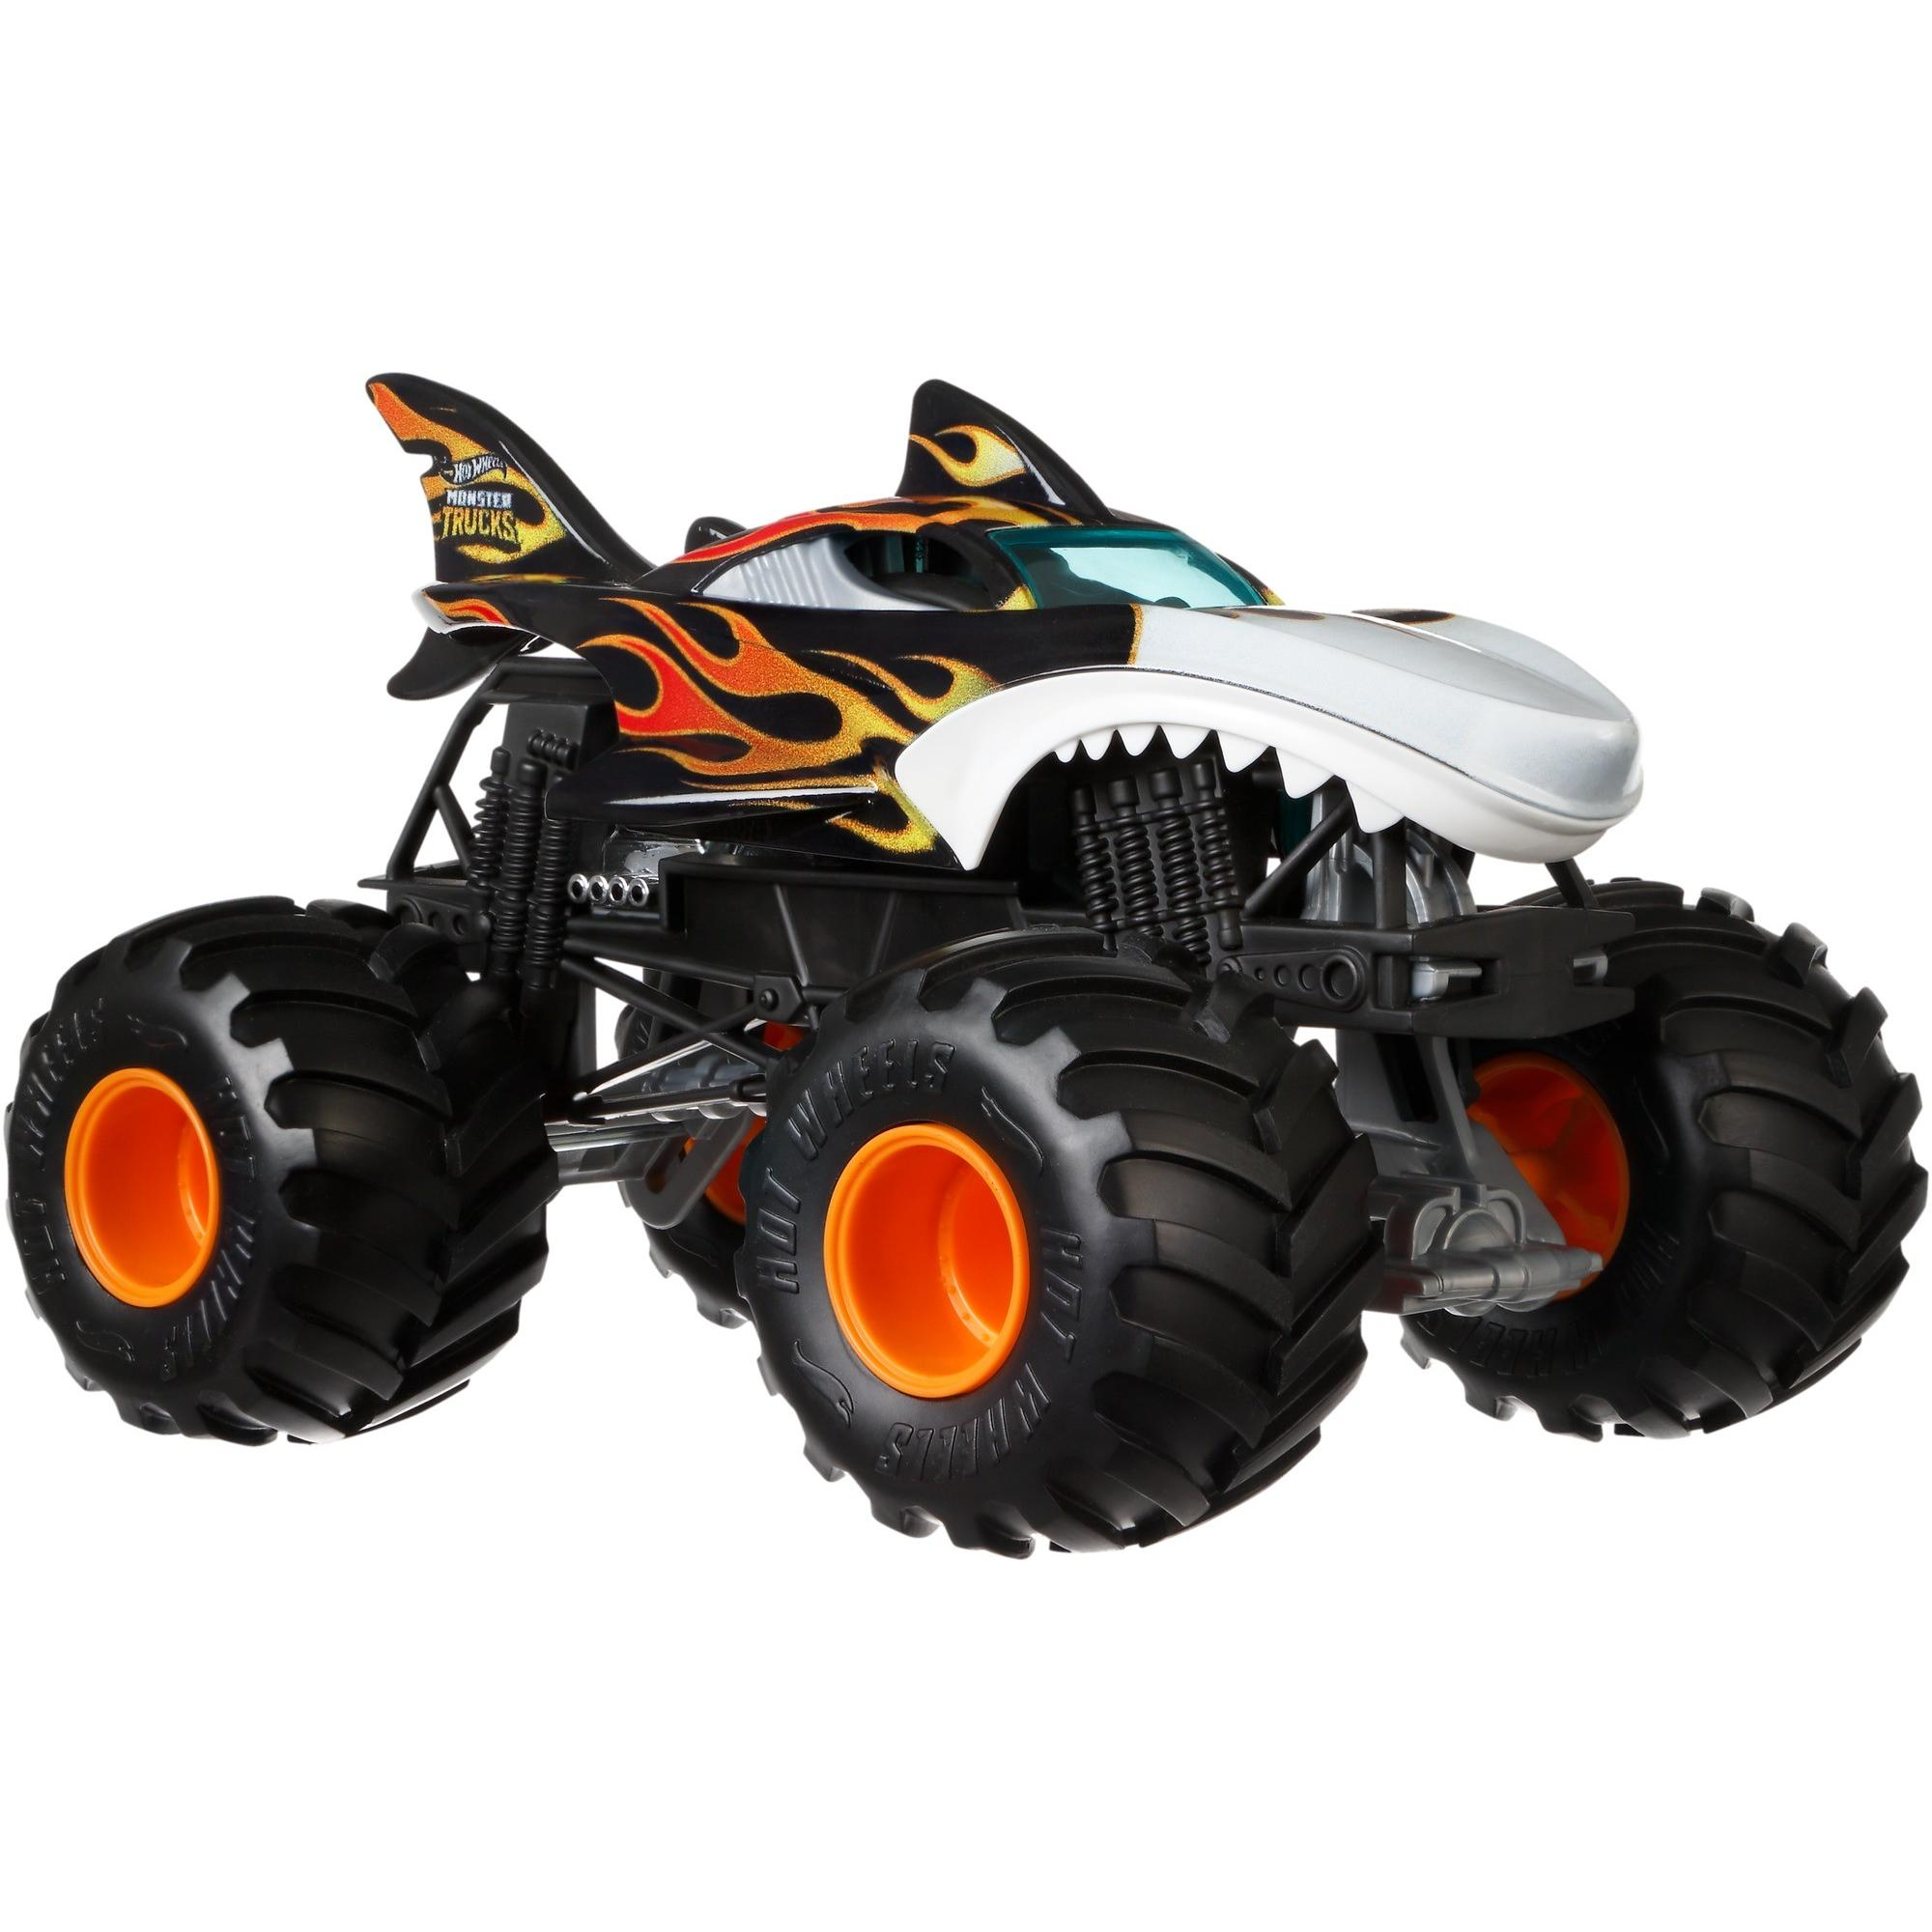 Hot Wheels Monster Trucks 1:24 Scale Shark Wreak by Mattel